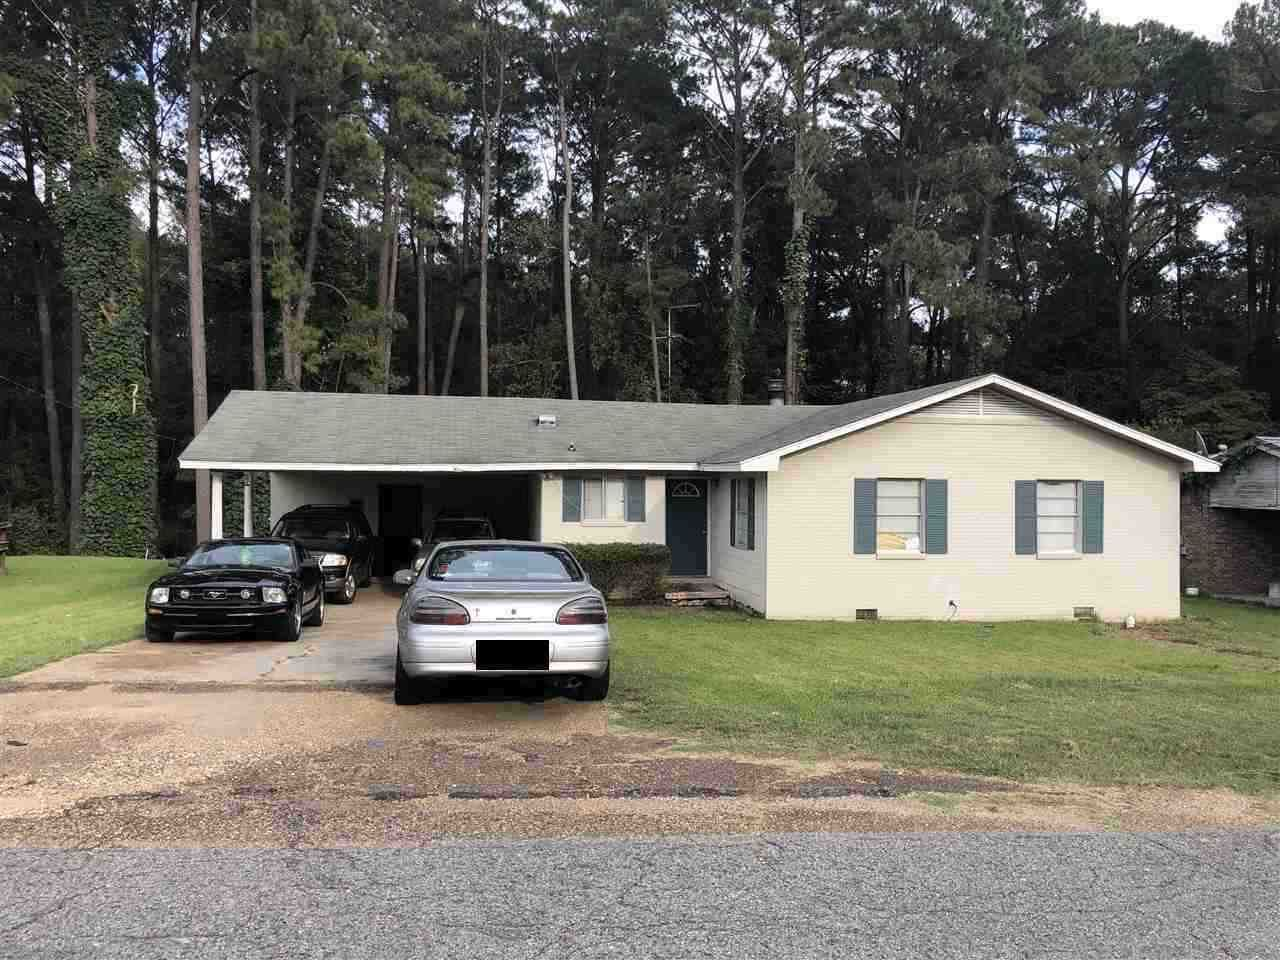 823 MAMIE DR, Mendenhall, MS 39114 - MLS#: 324681